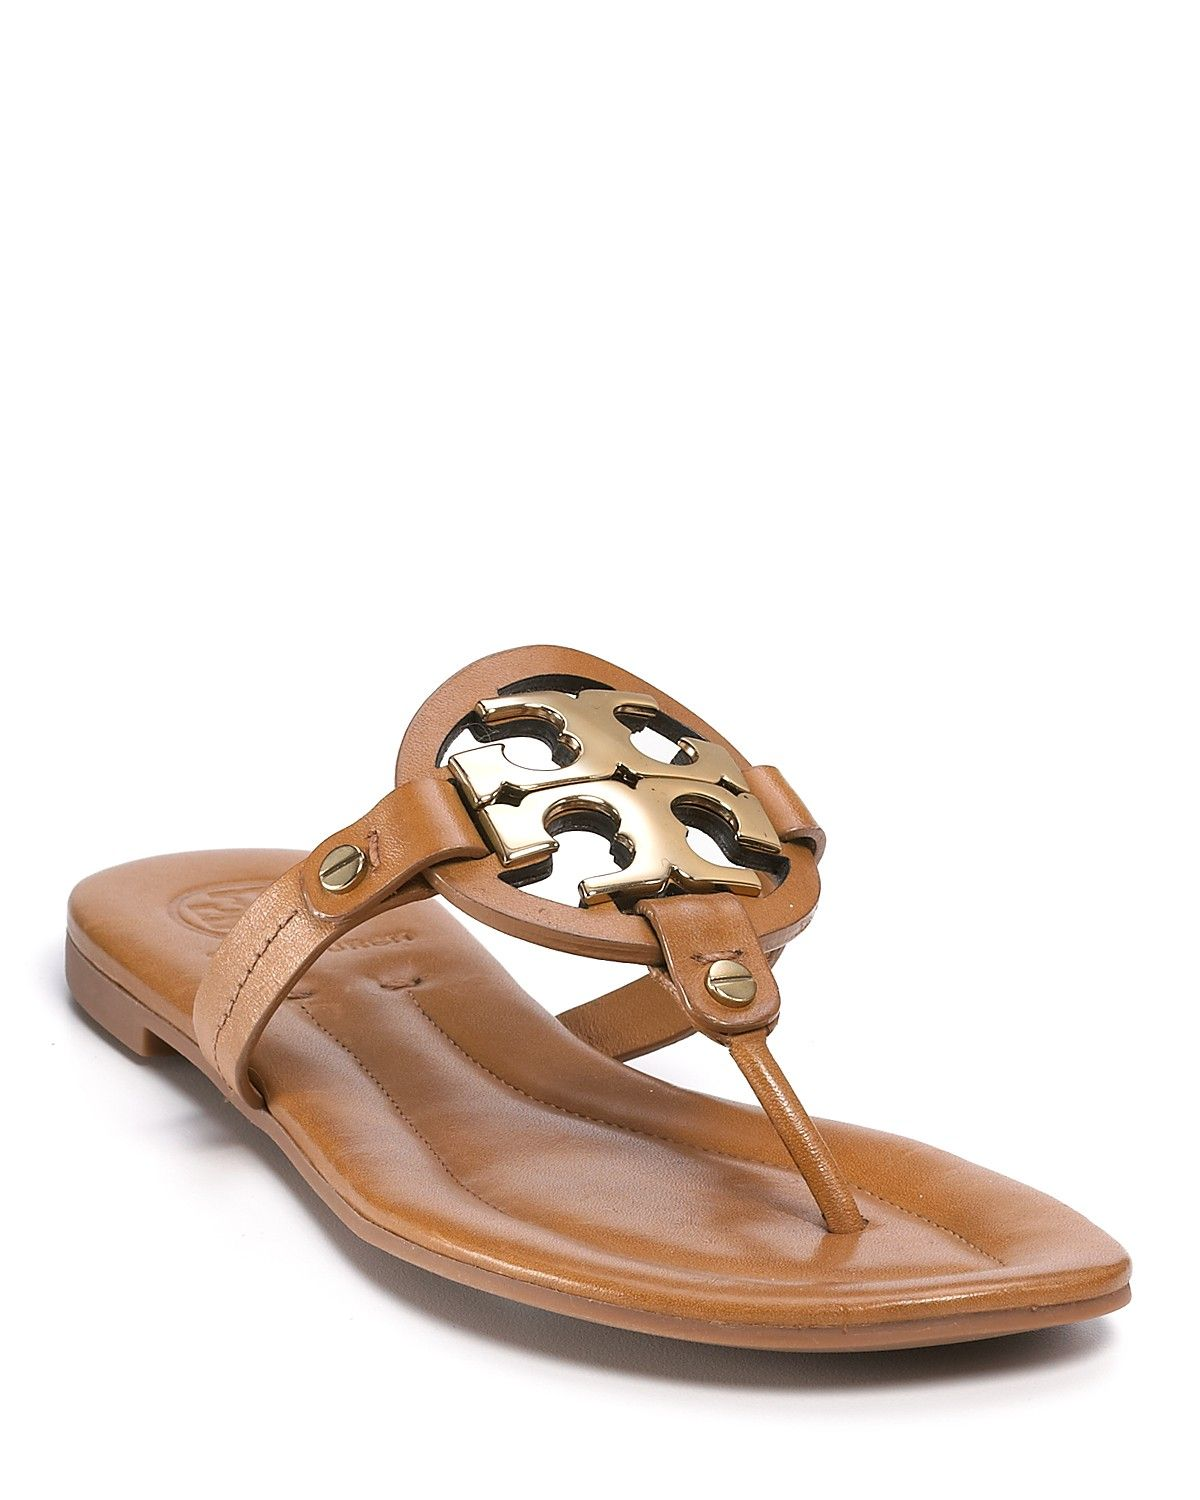 9e8b466f992833 Tory Burch Sandals - perfect for summer! Their a bit pricey for me though!